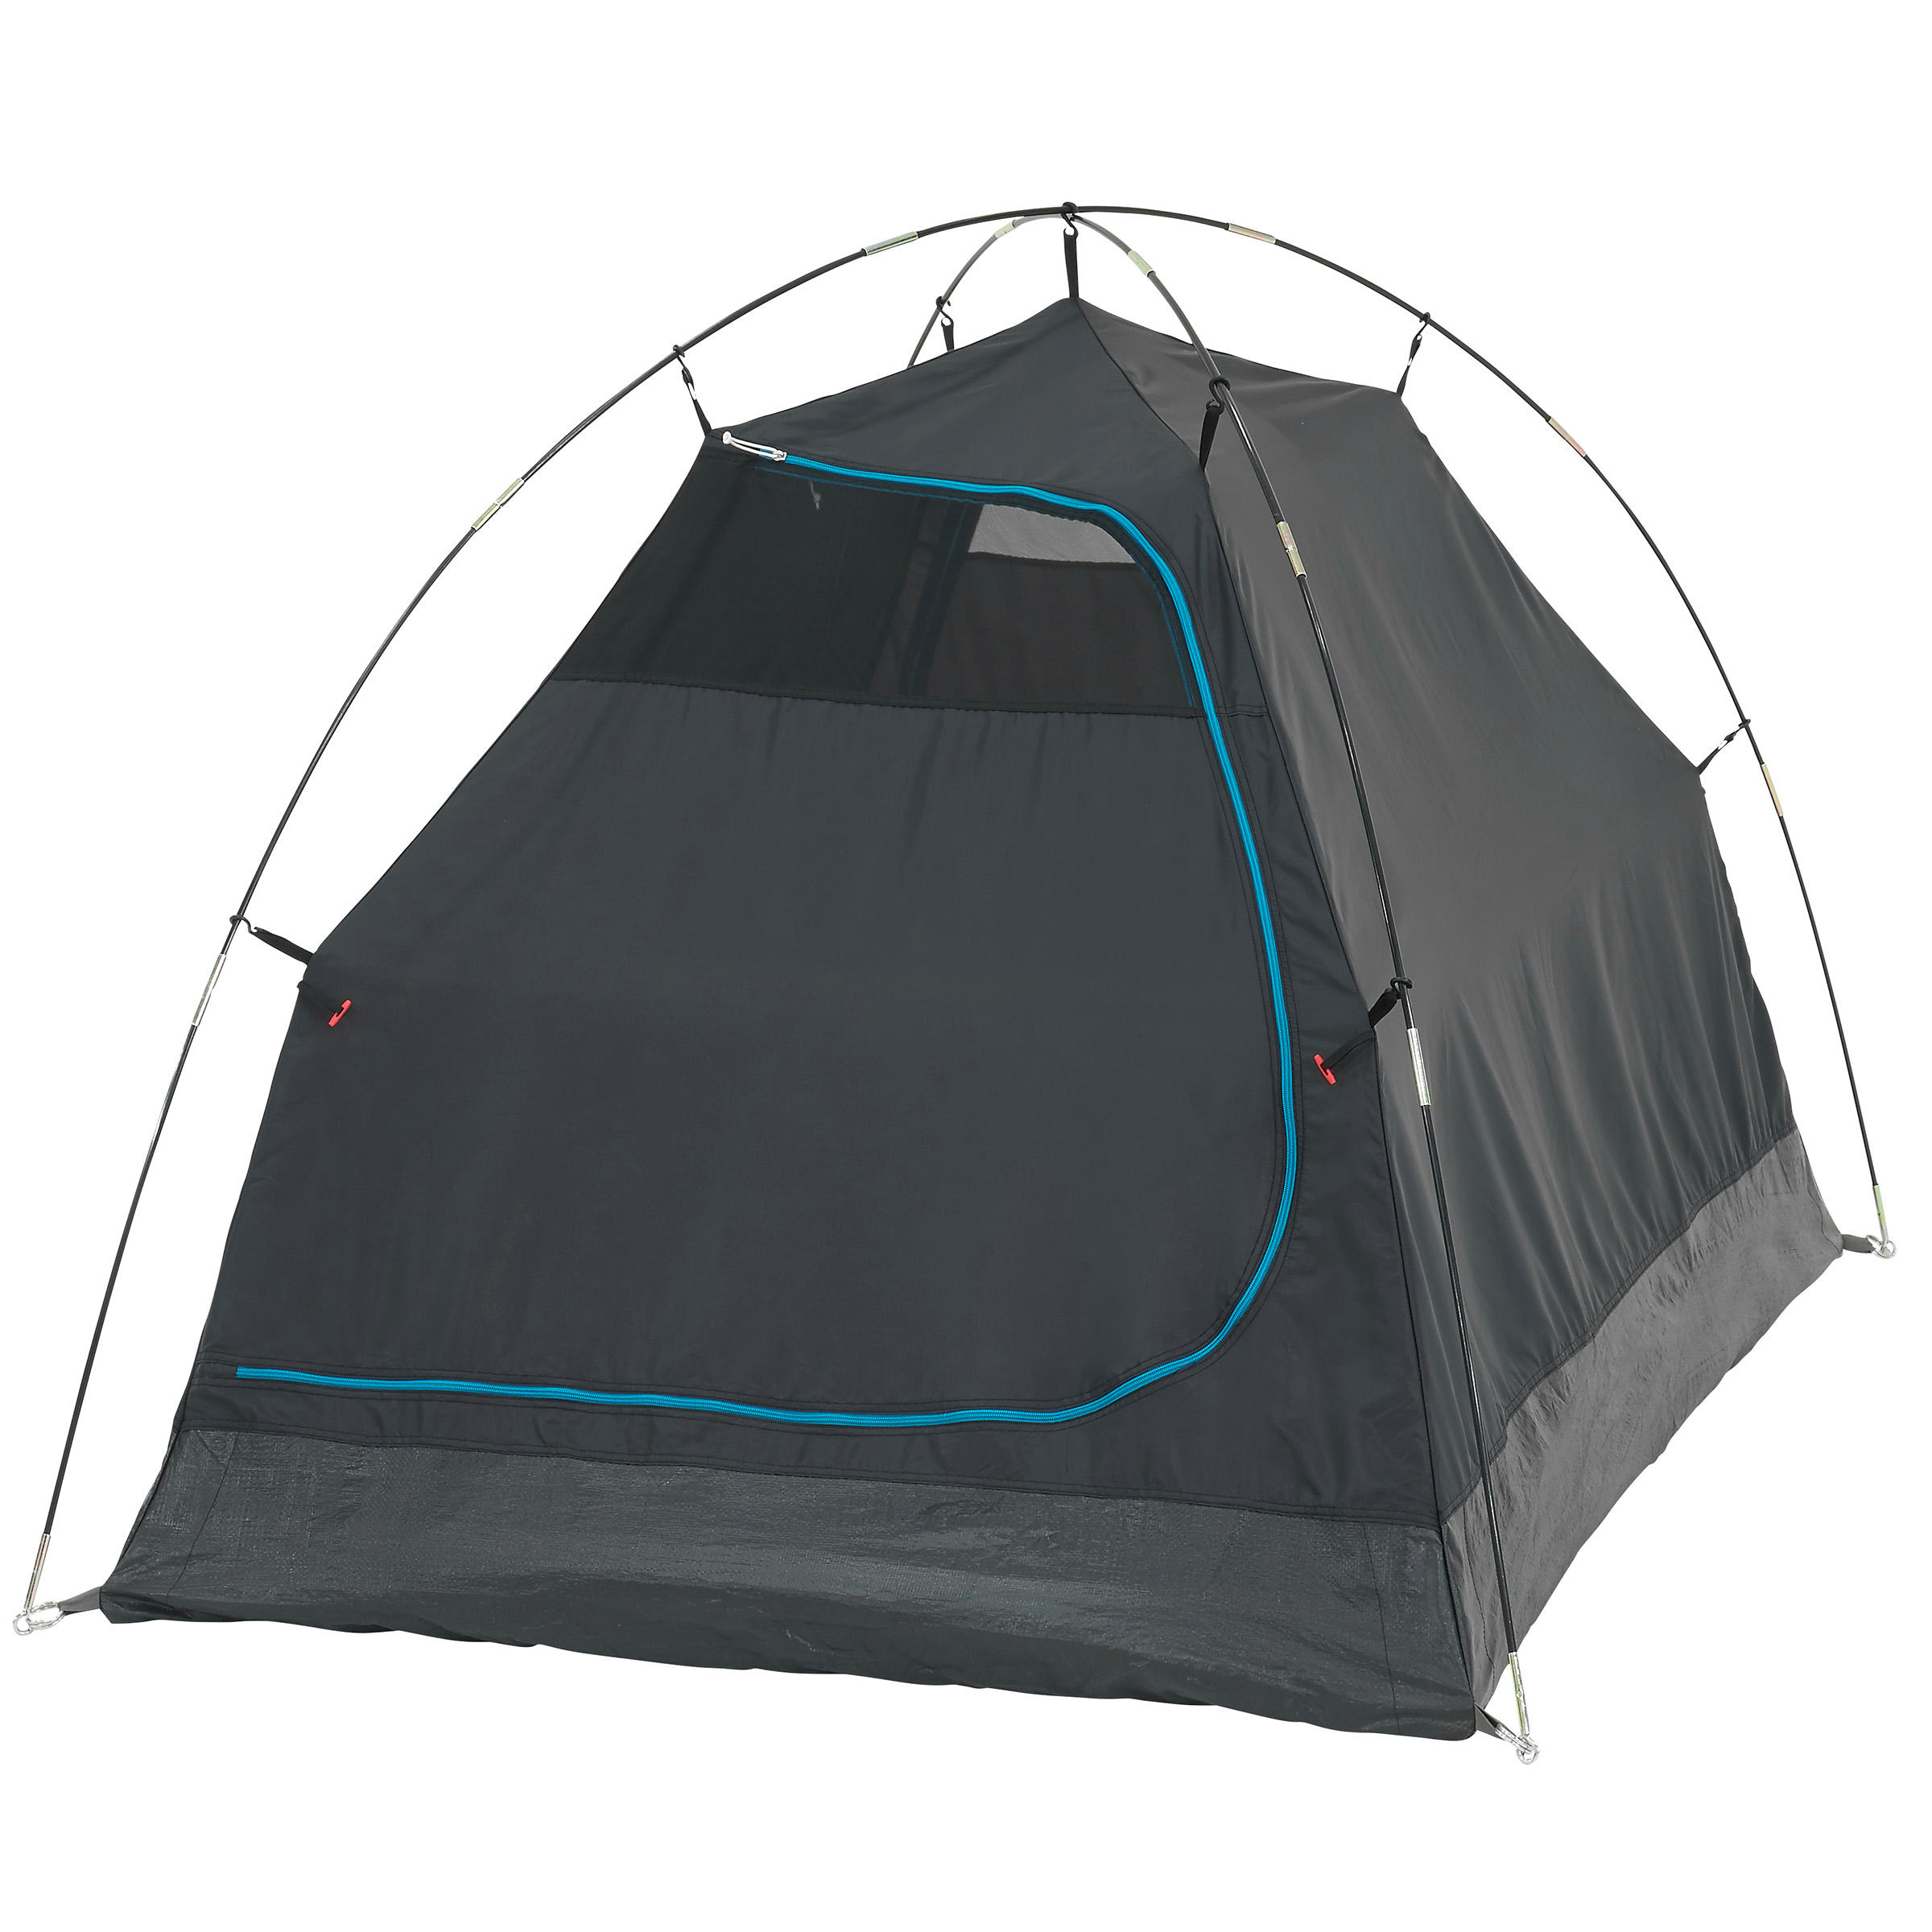 Buy Camping Tents Online Quechua Fresh& Black tents for Camping ~ 14011927_Camping Liegestuhl Decathlon